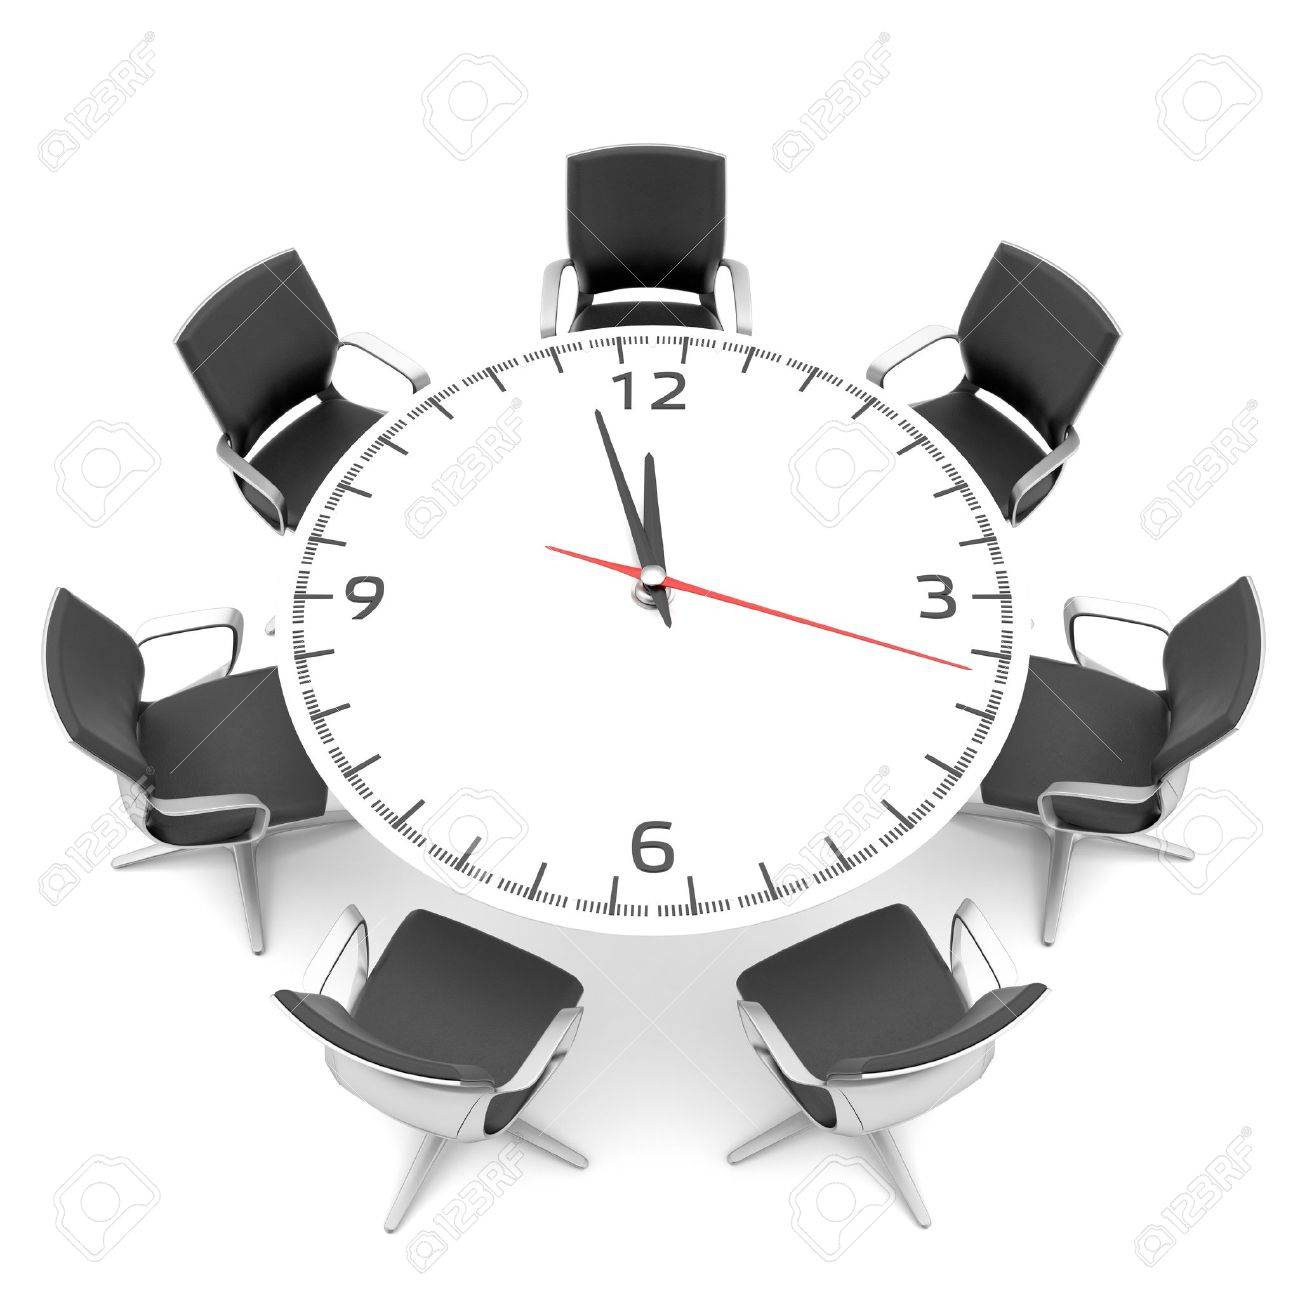 Round Table With A Large Clock Face Stock Photo Picture And Royalty